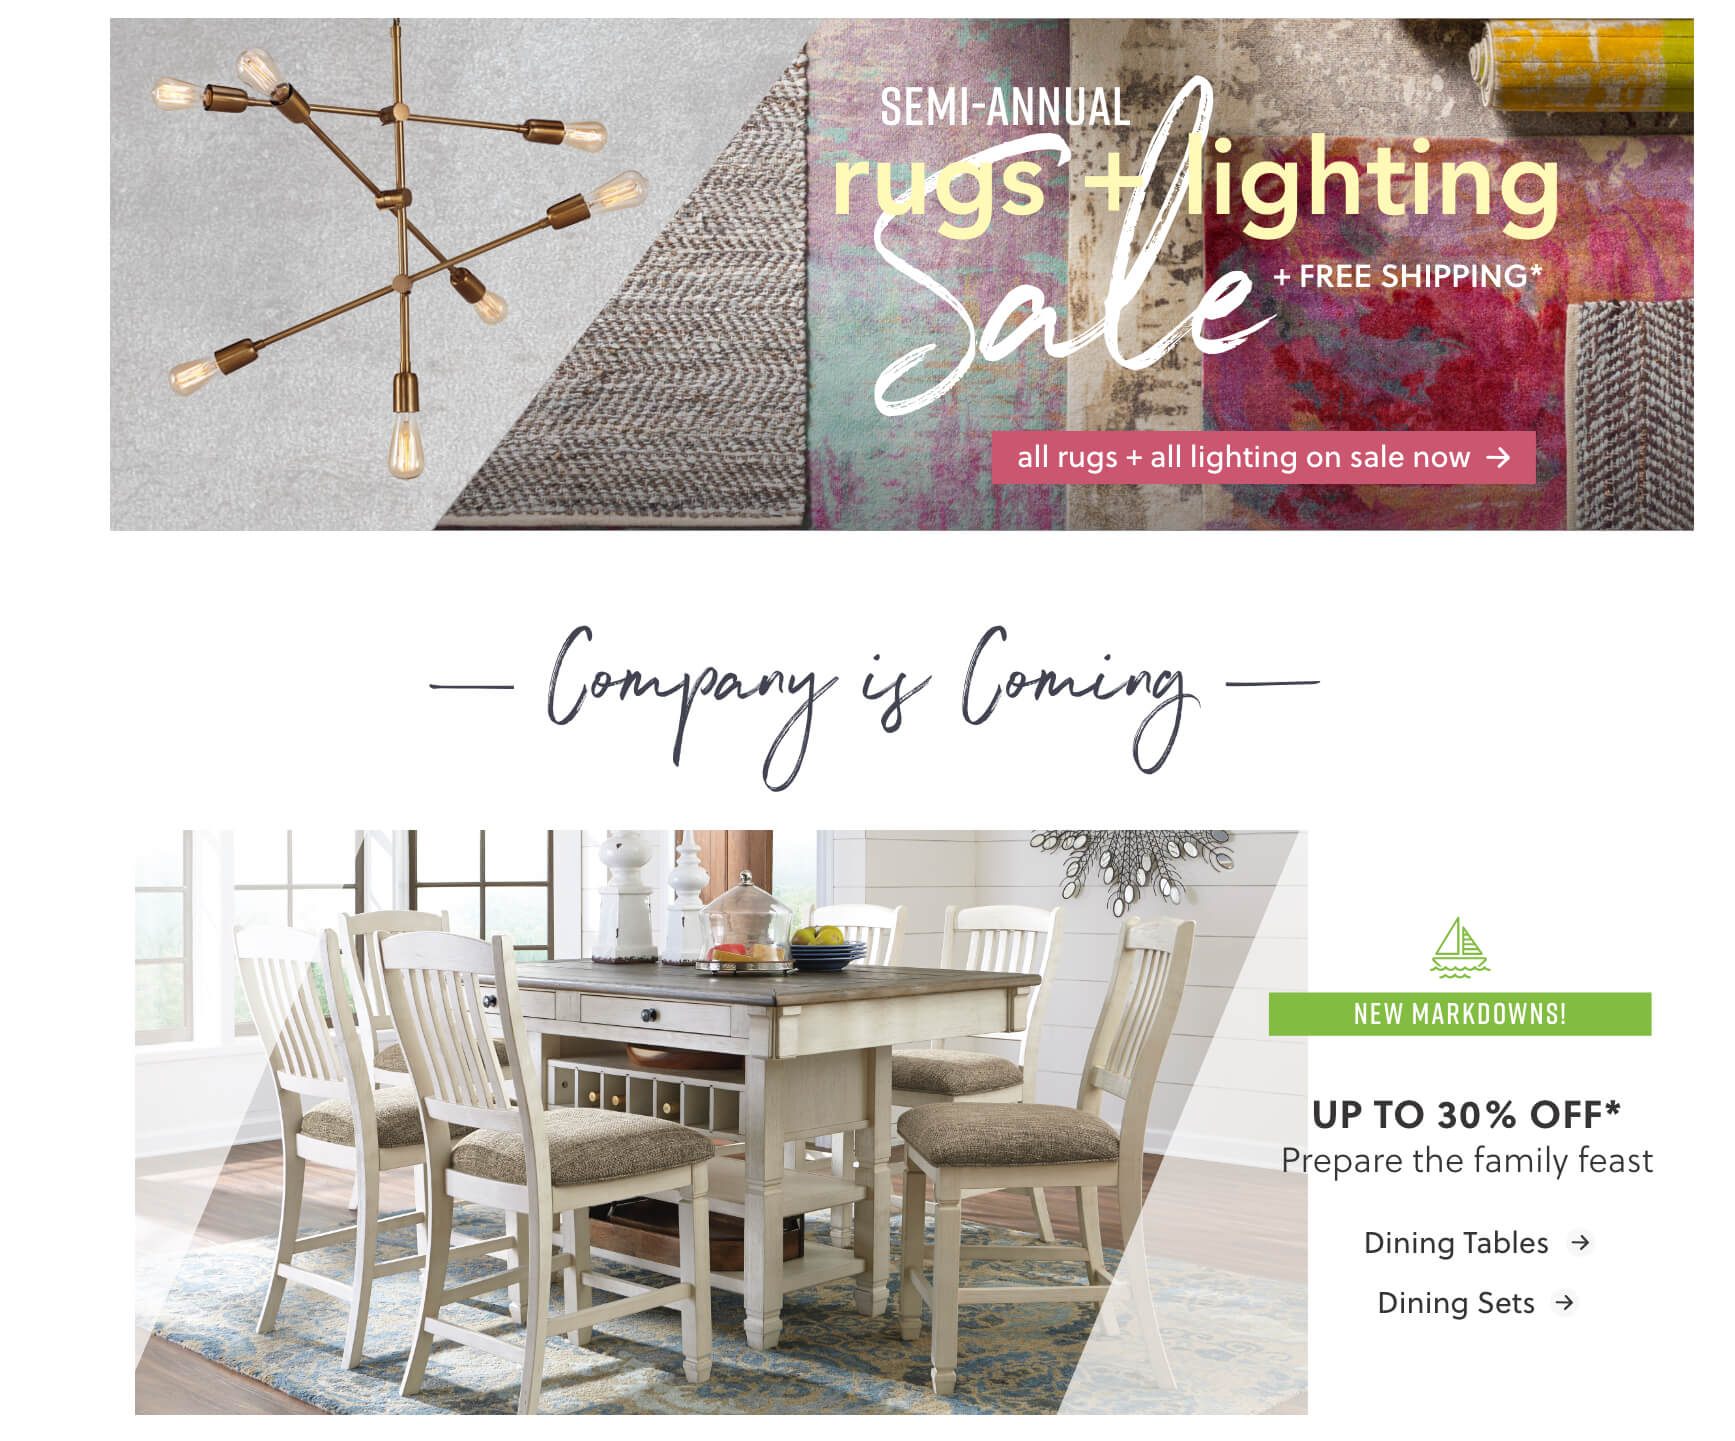 Rugs and Lighting Sale, Dining Tables, Dining Sets